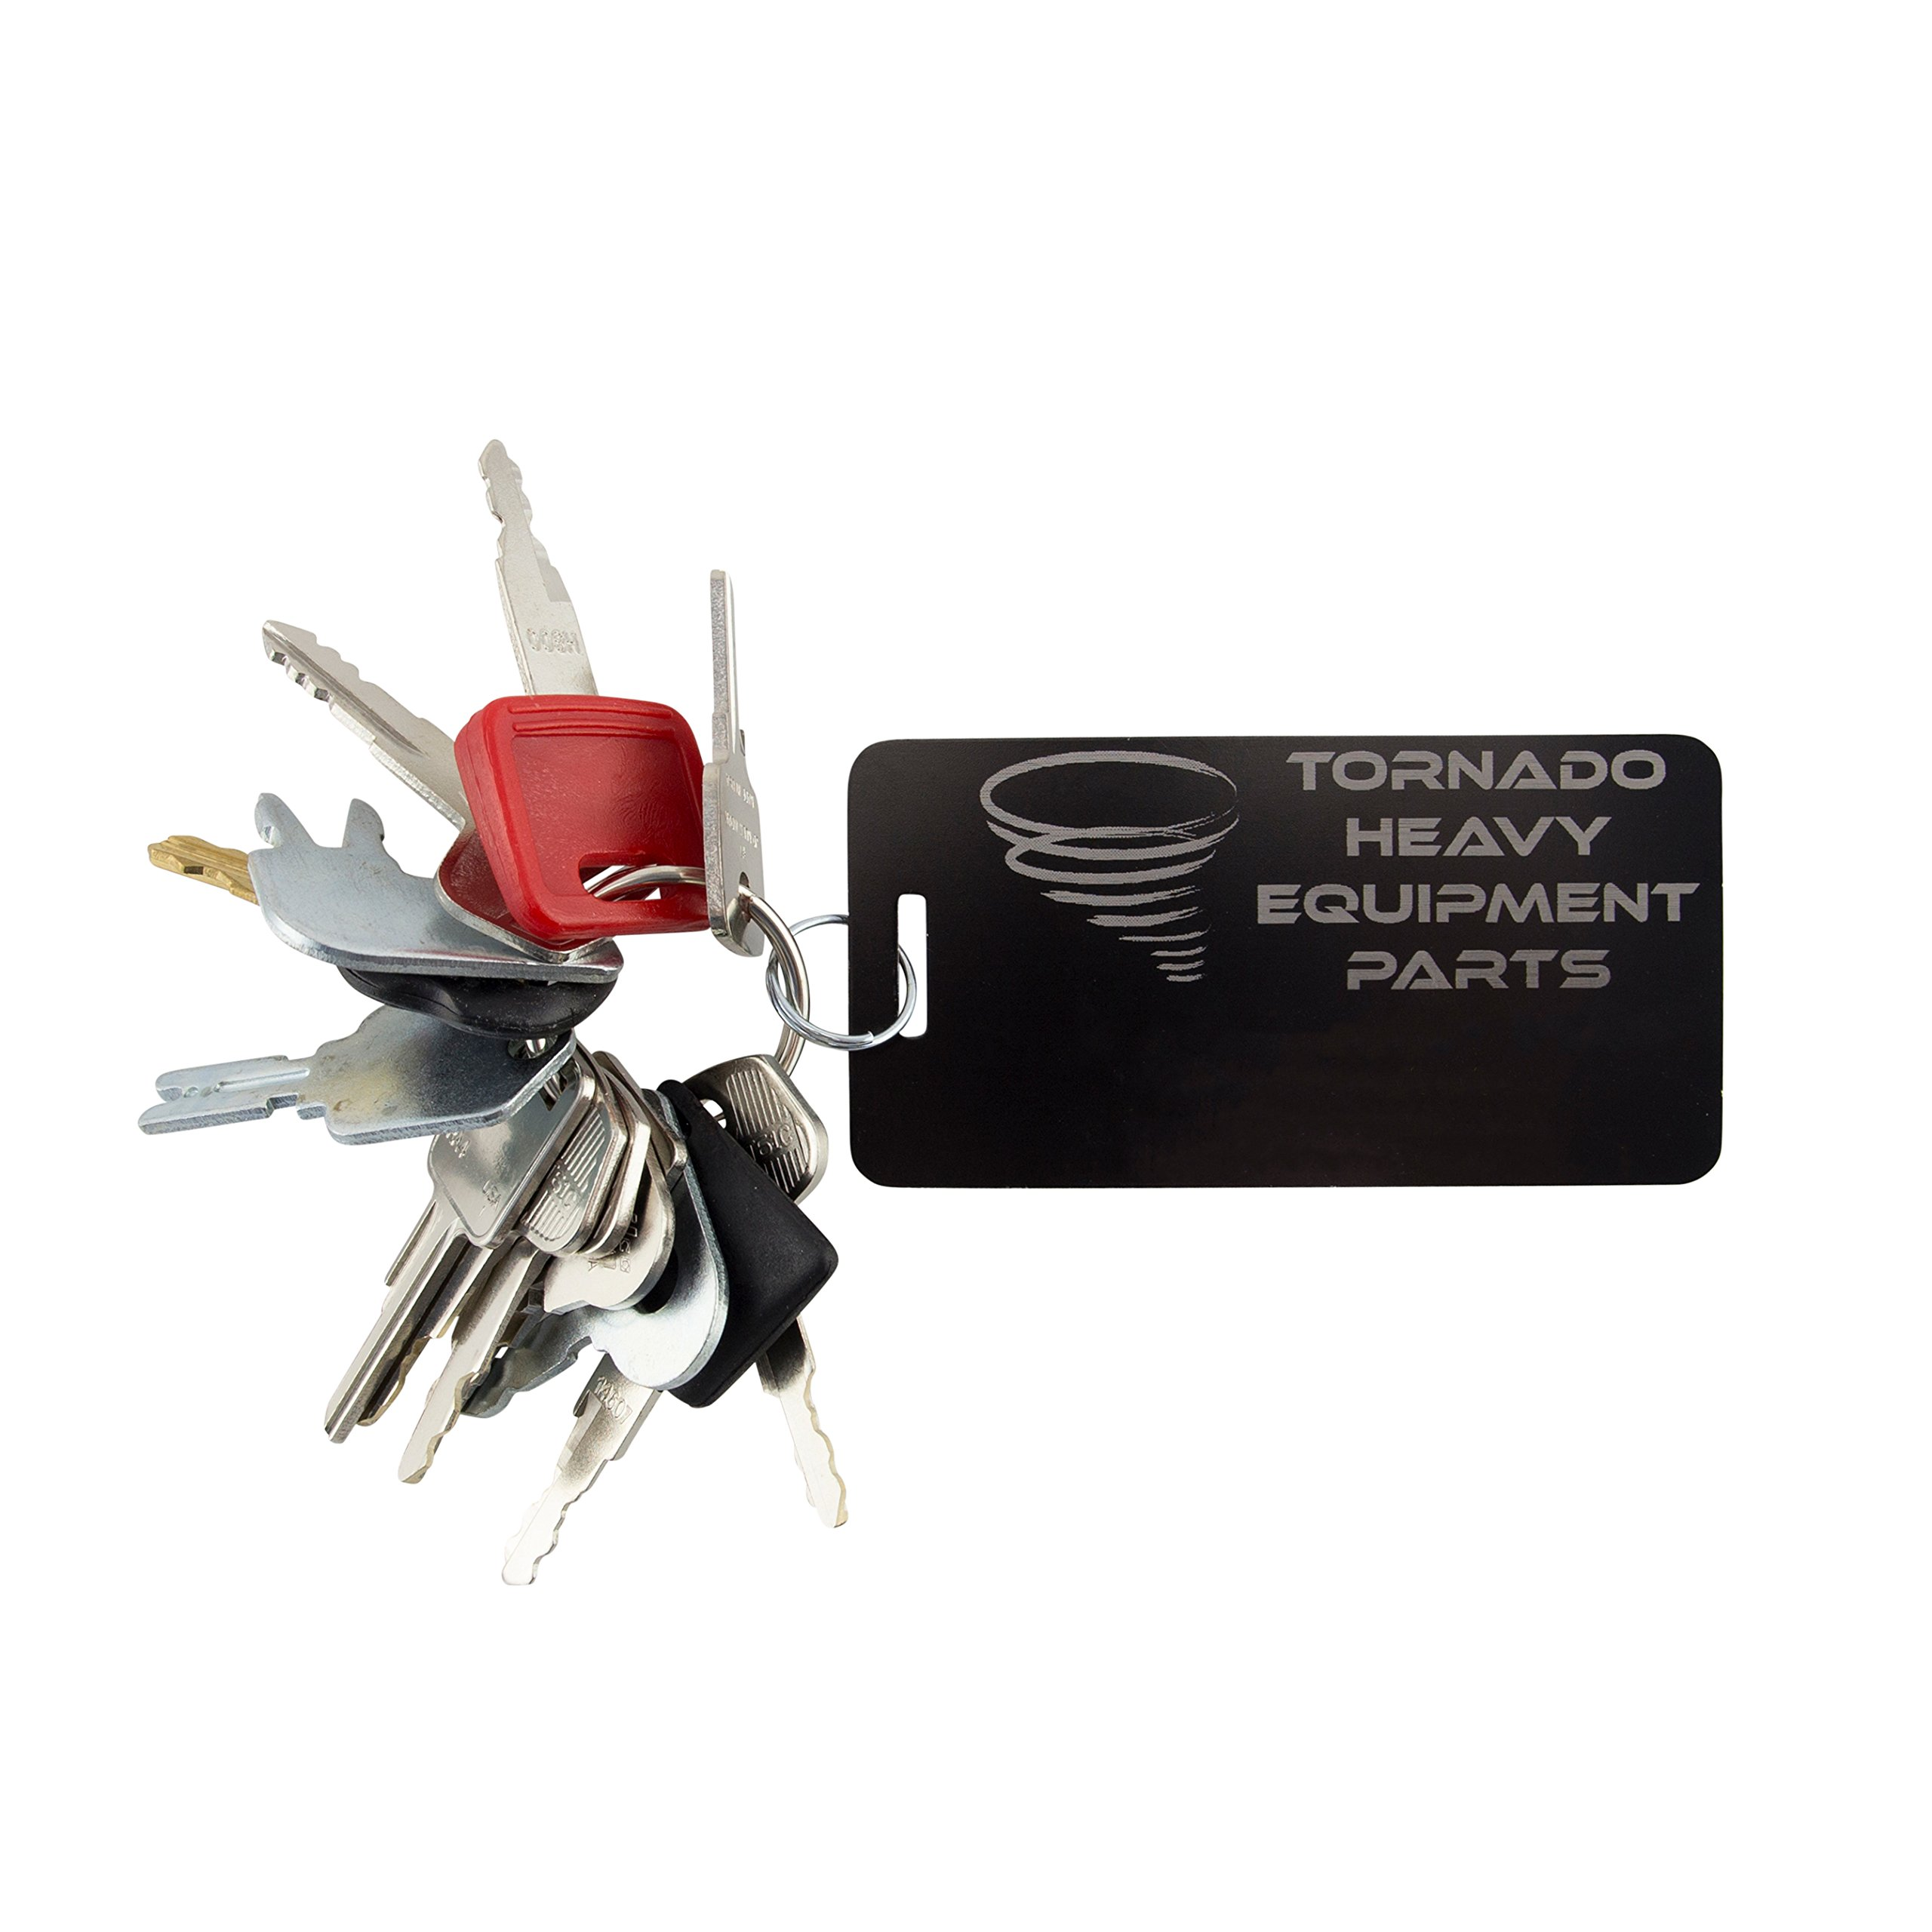 TORNADO HEAVY EQUIPMENT PARTS CONSTRUCTION IGNITION KEY SETS TORNADO - Comes in sets of 7, 10, 12, 14, 16, 18, 20 for backhoes, tools, case, cat, etc. See product description for more info. (14 Key Set)